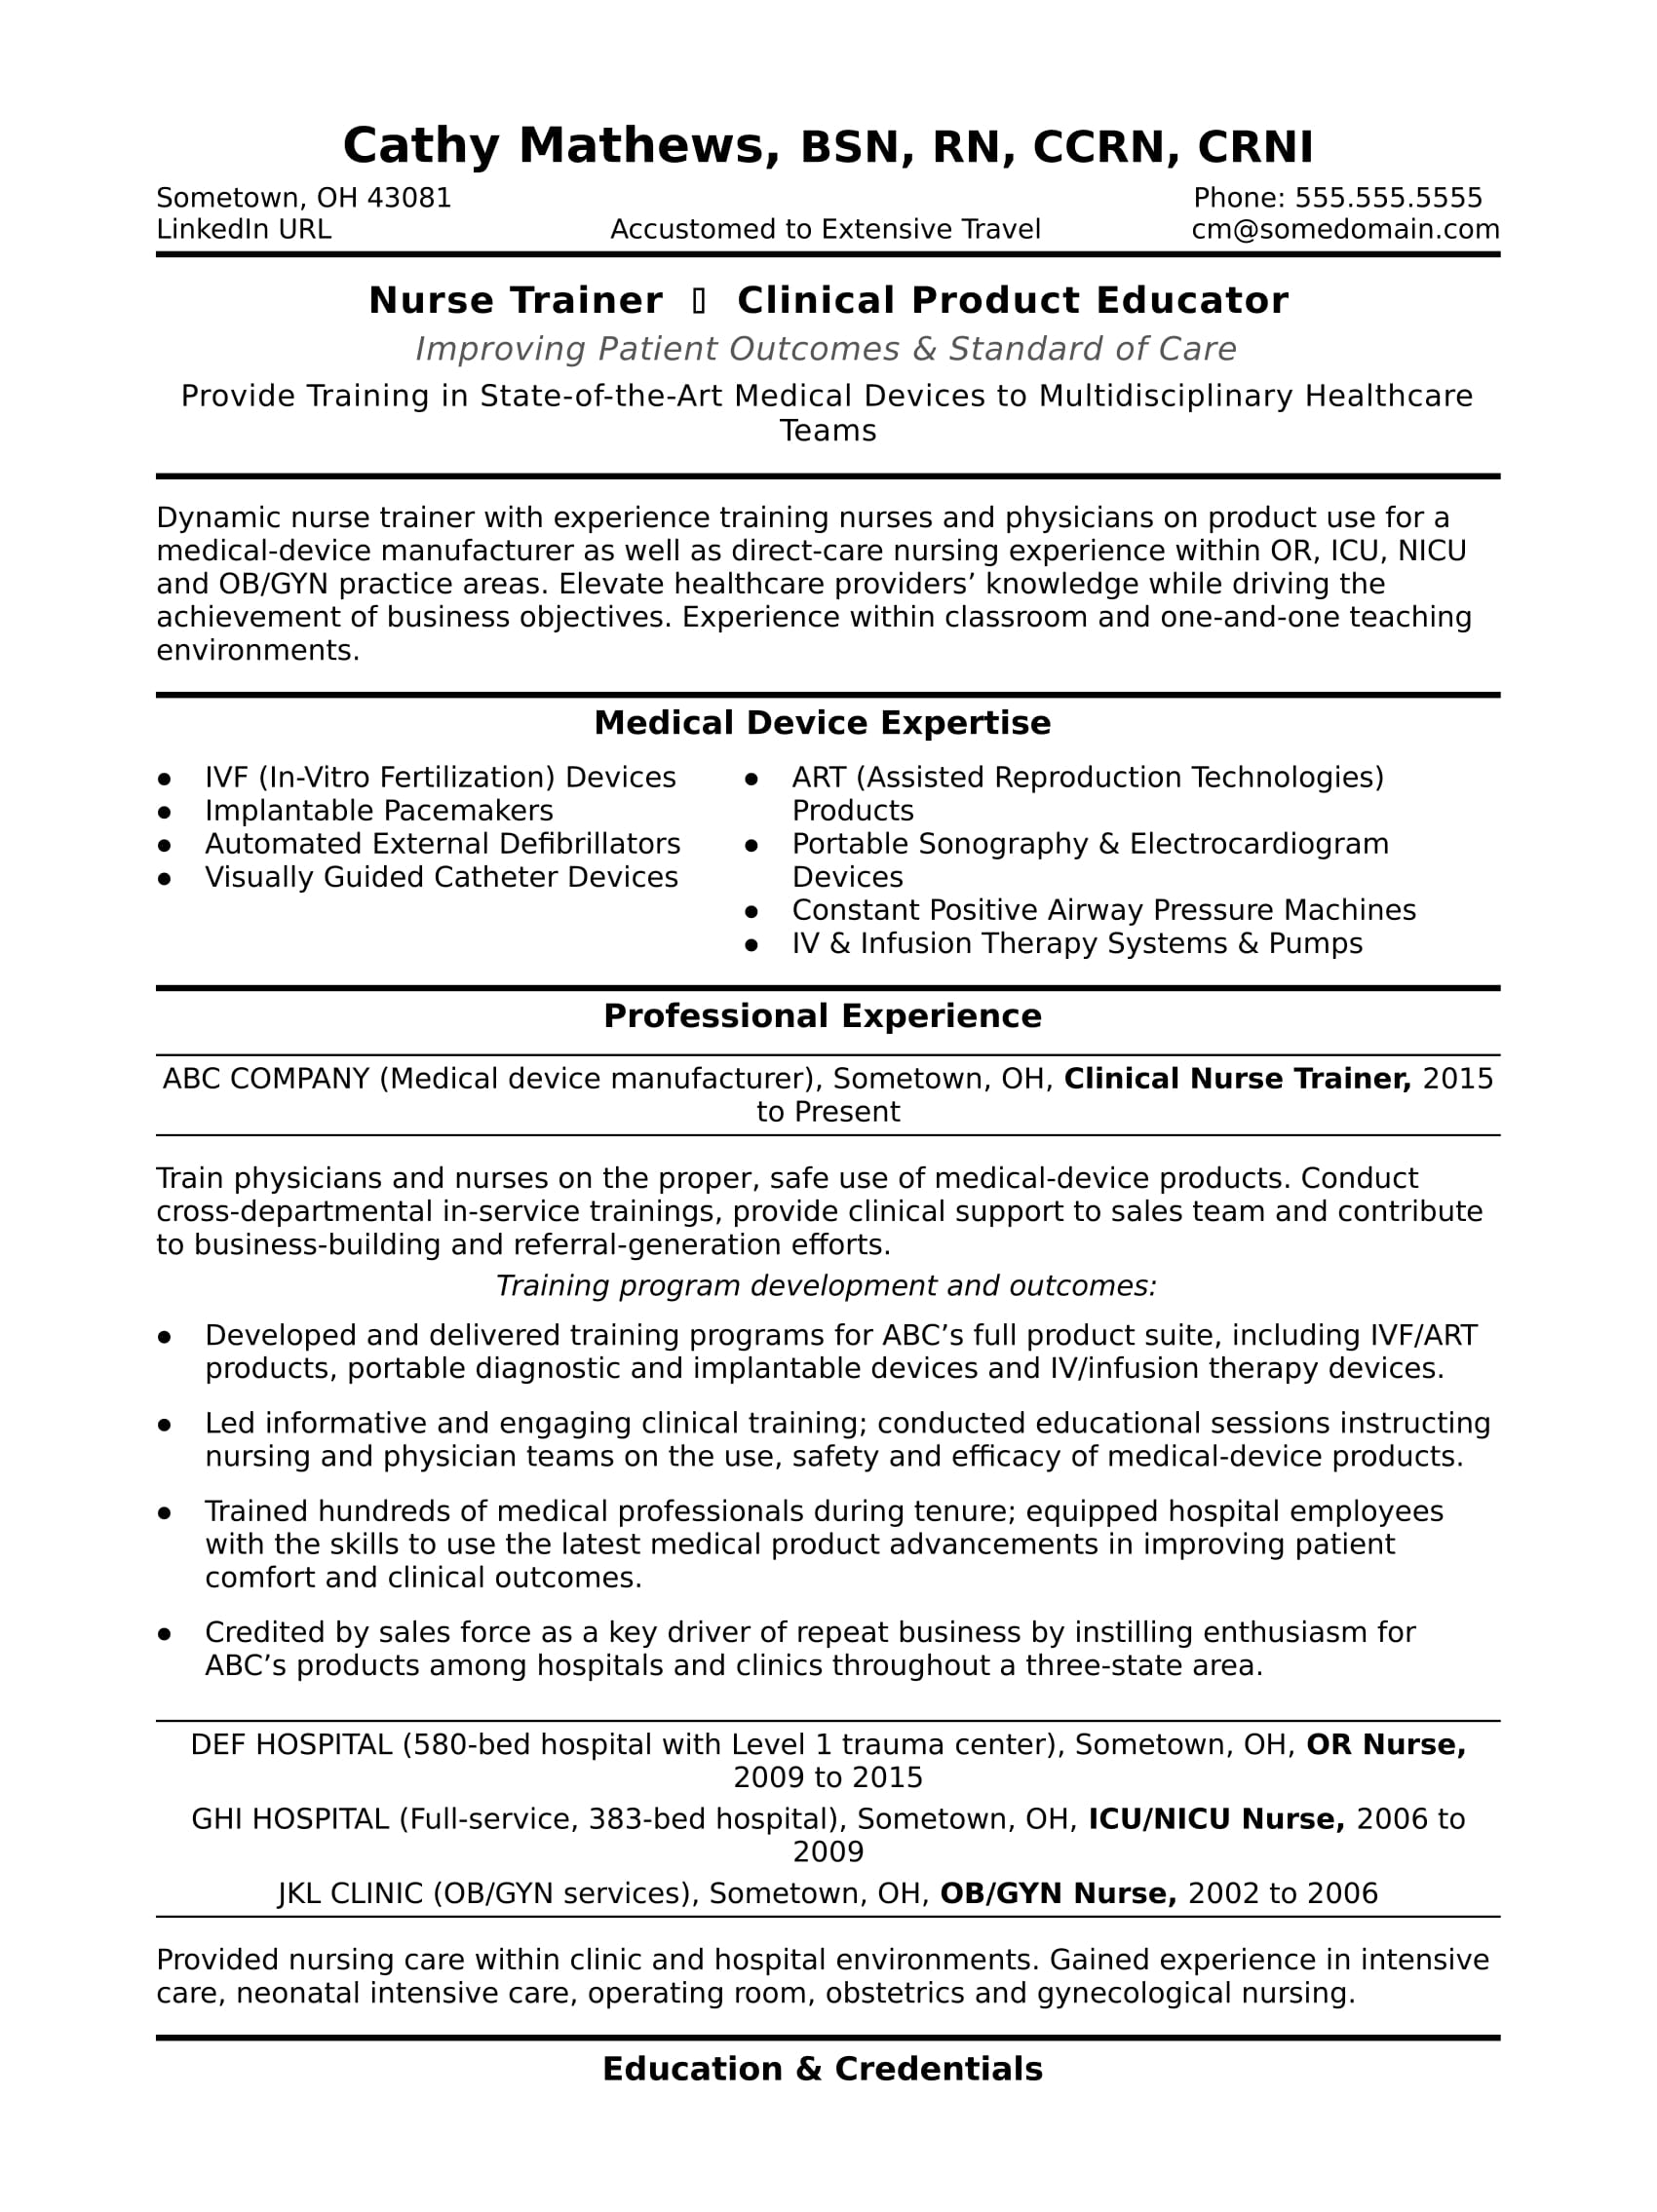 Nurse Trainer Resume Sample  Monstercom